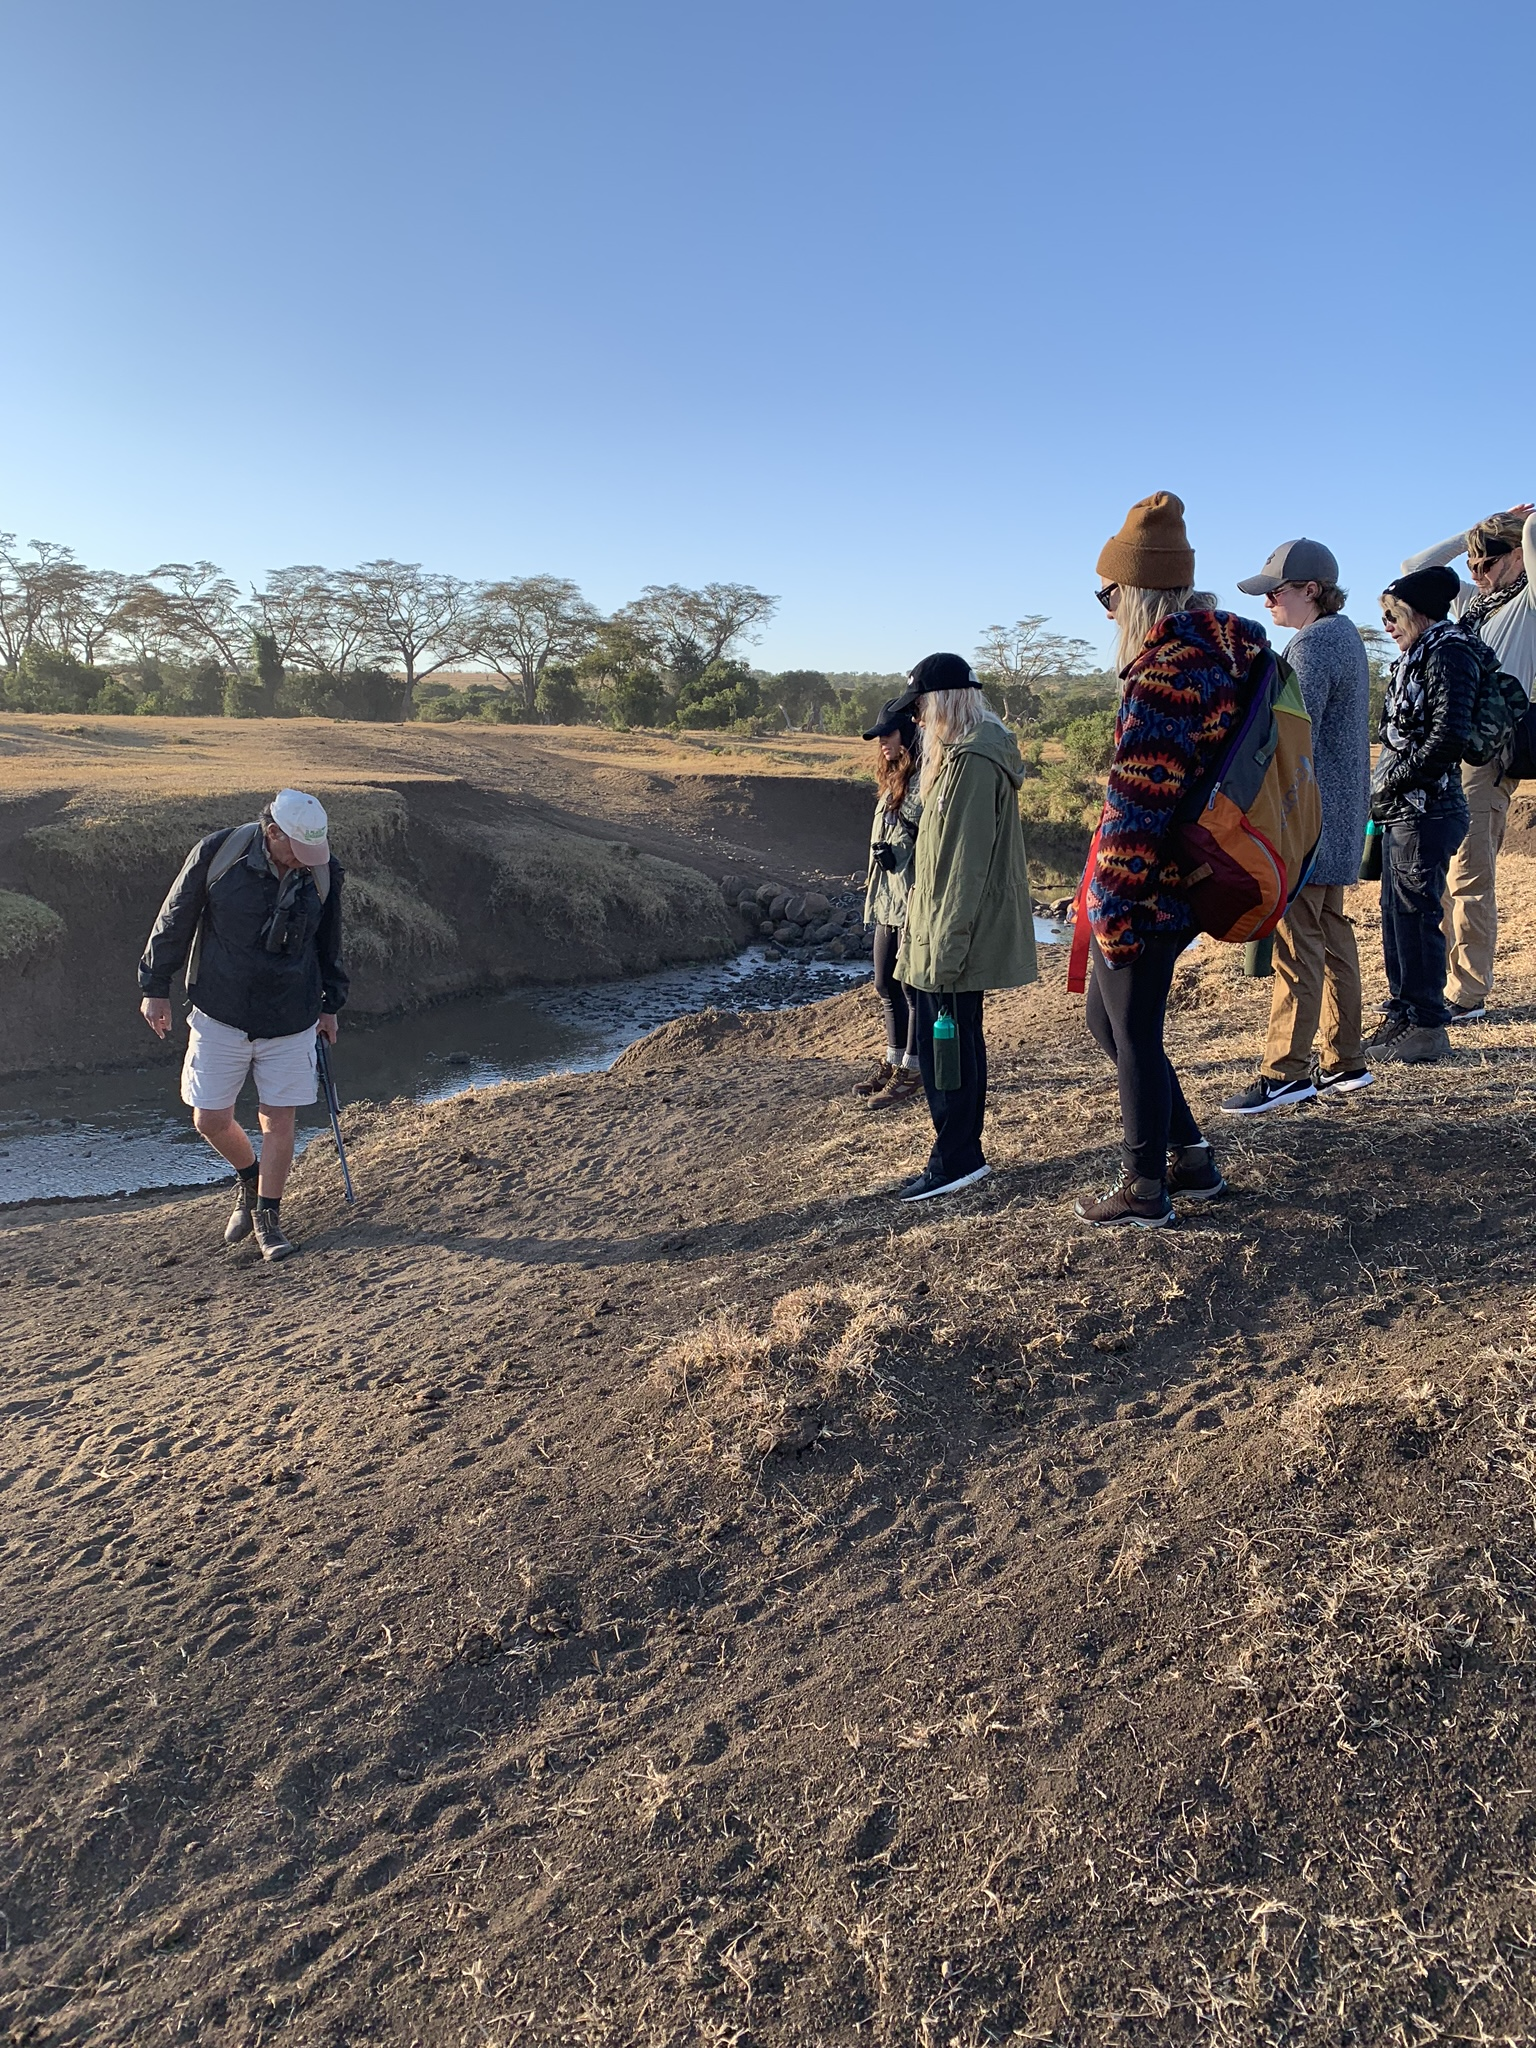 Andy, the owner of The Safari Cottages, lead a bush walk where we learned all the things… including everything you'd ever want to know about Elephant Poop (ha!)